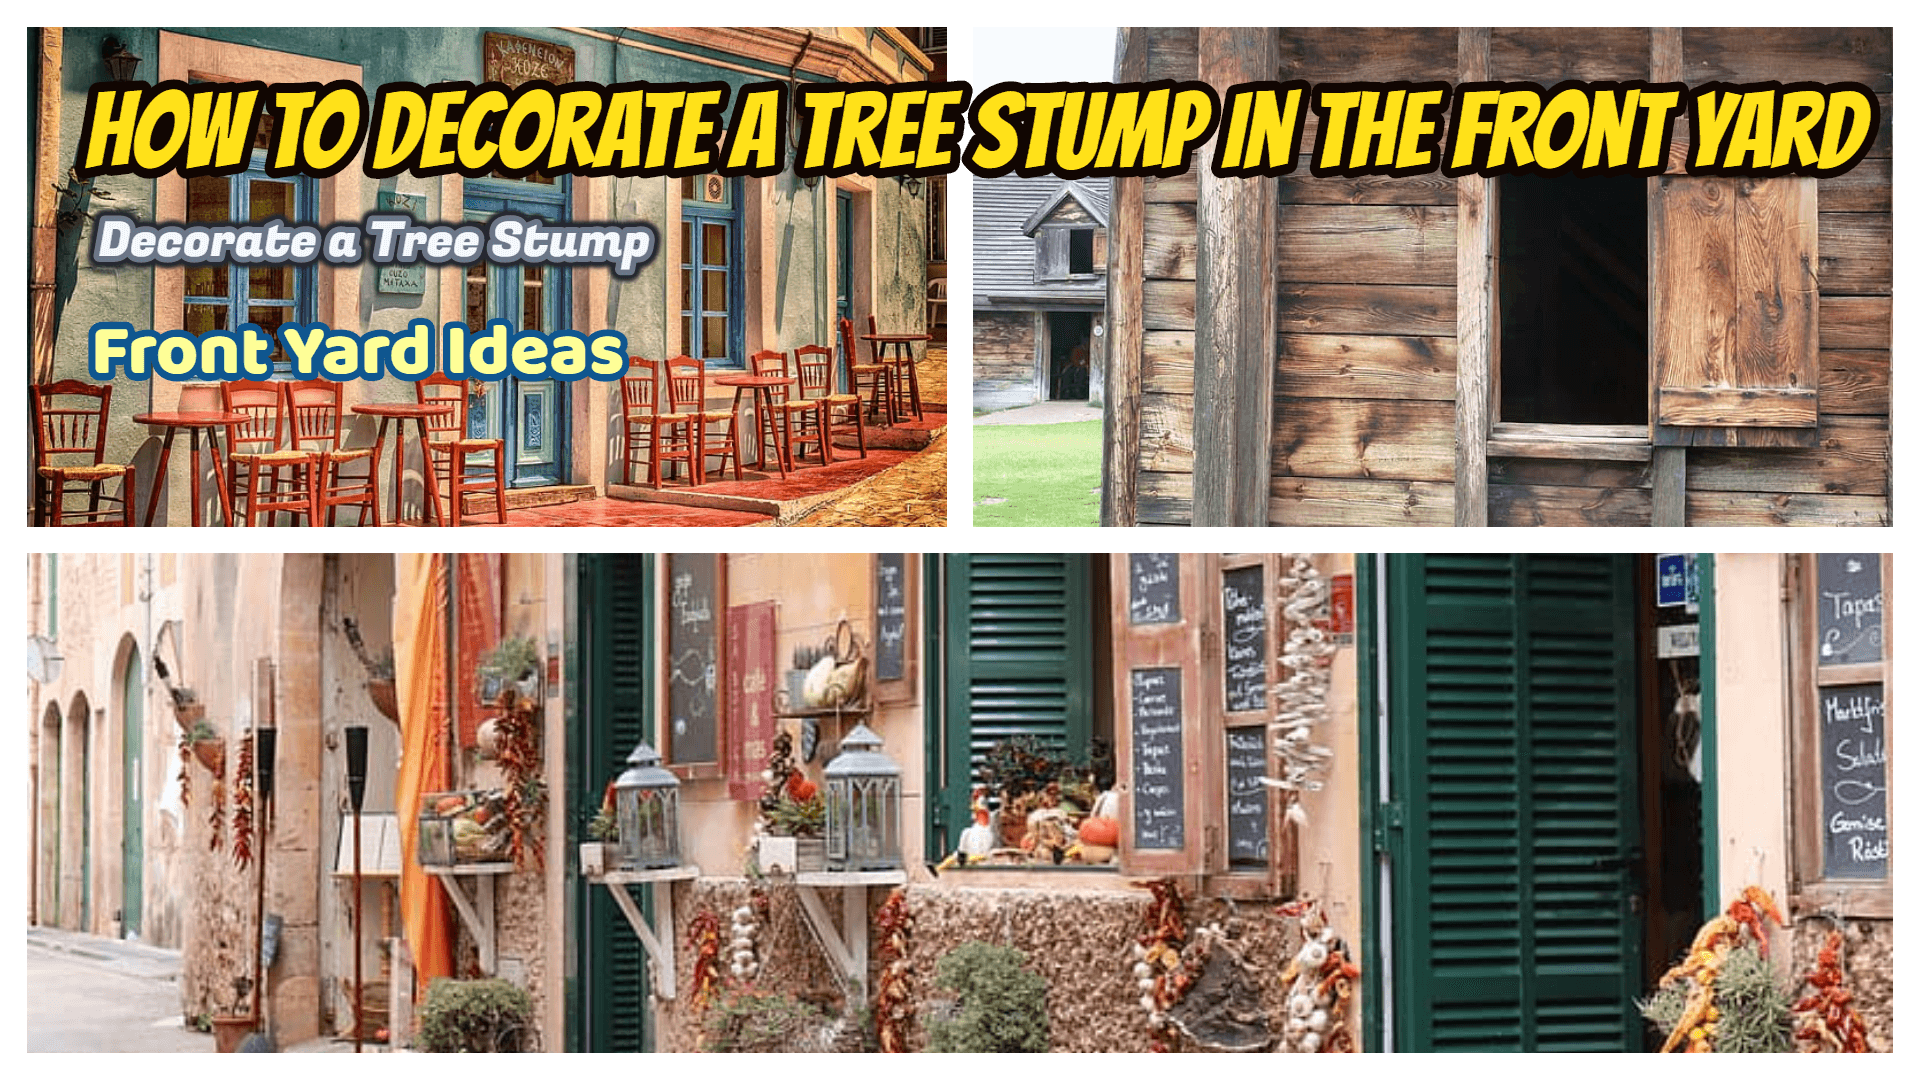 How to Decorate a Tree Stump in the Front Yard tips